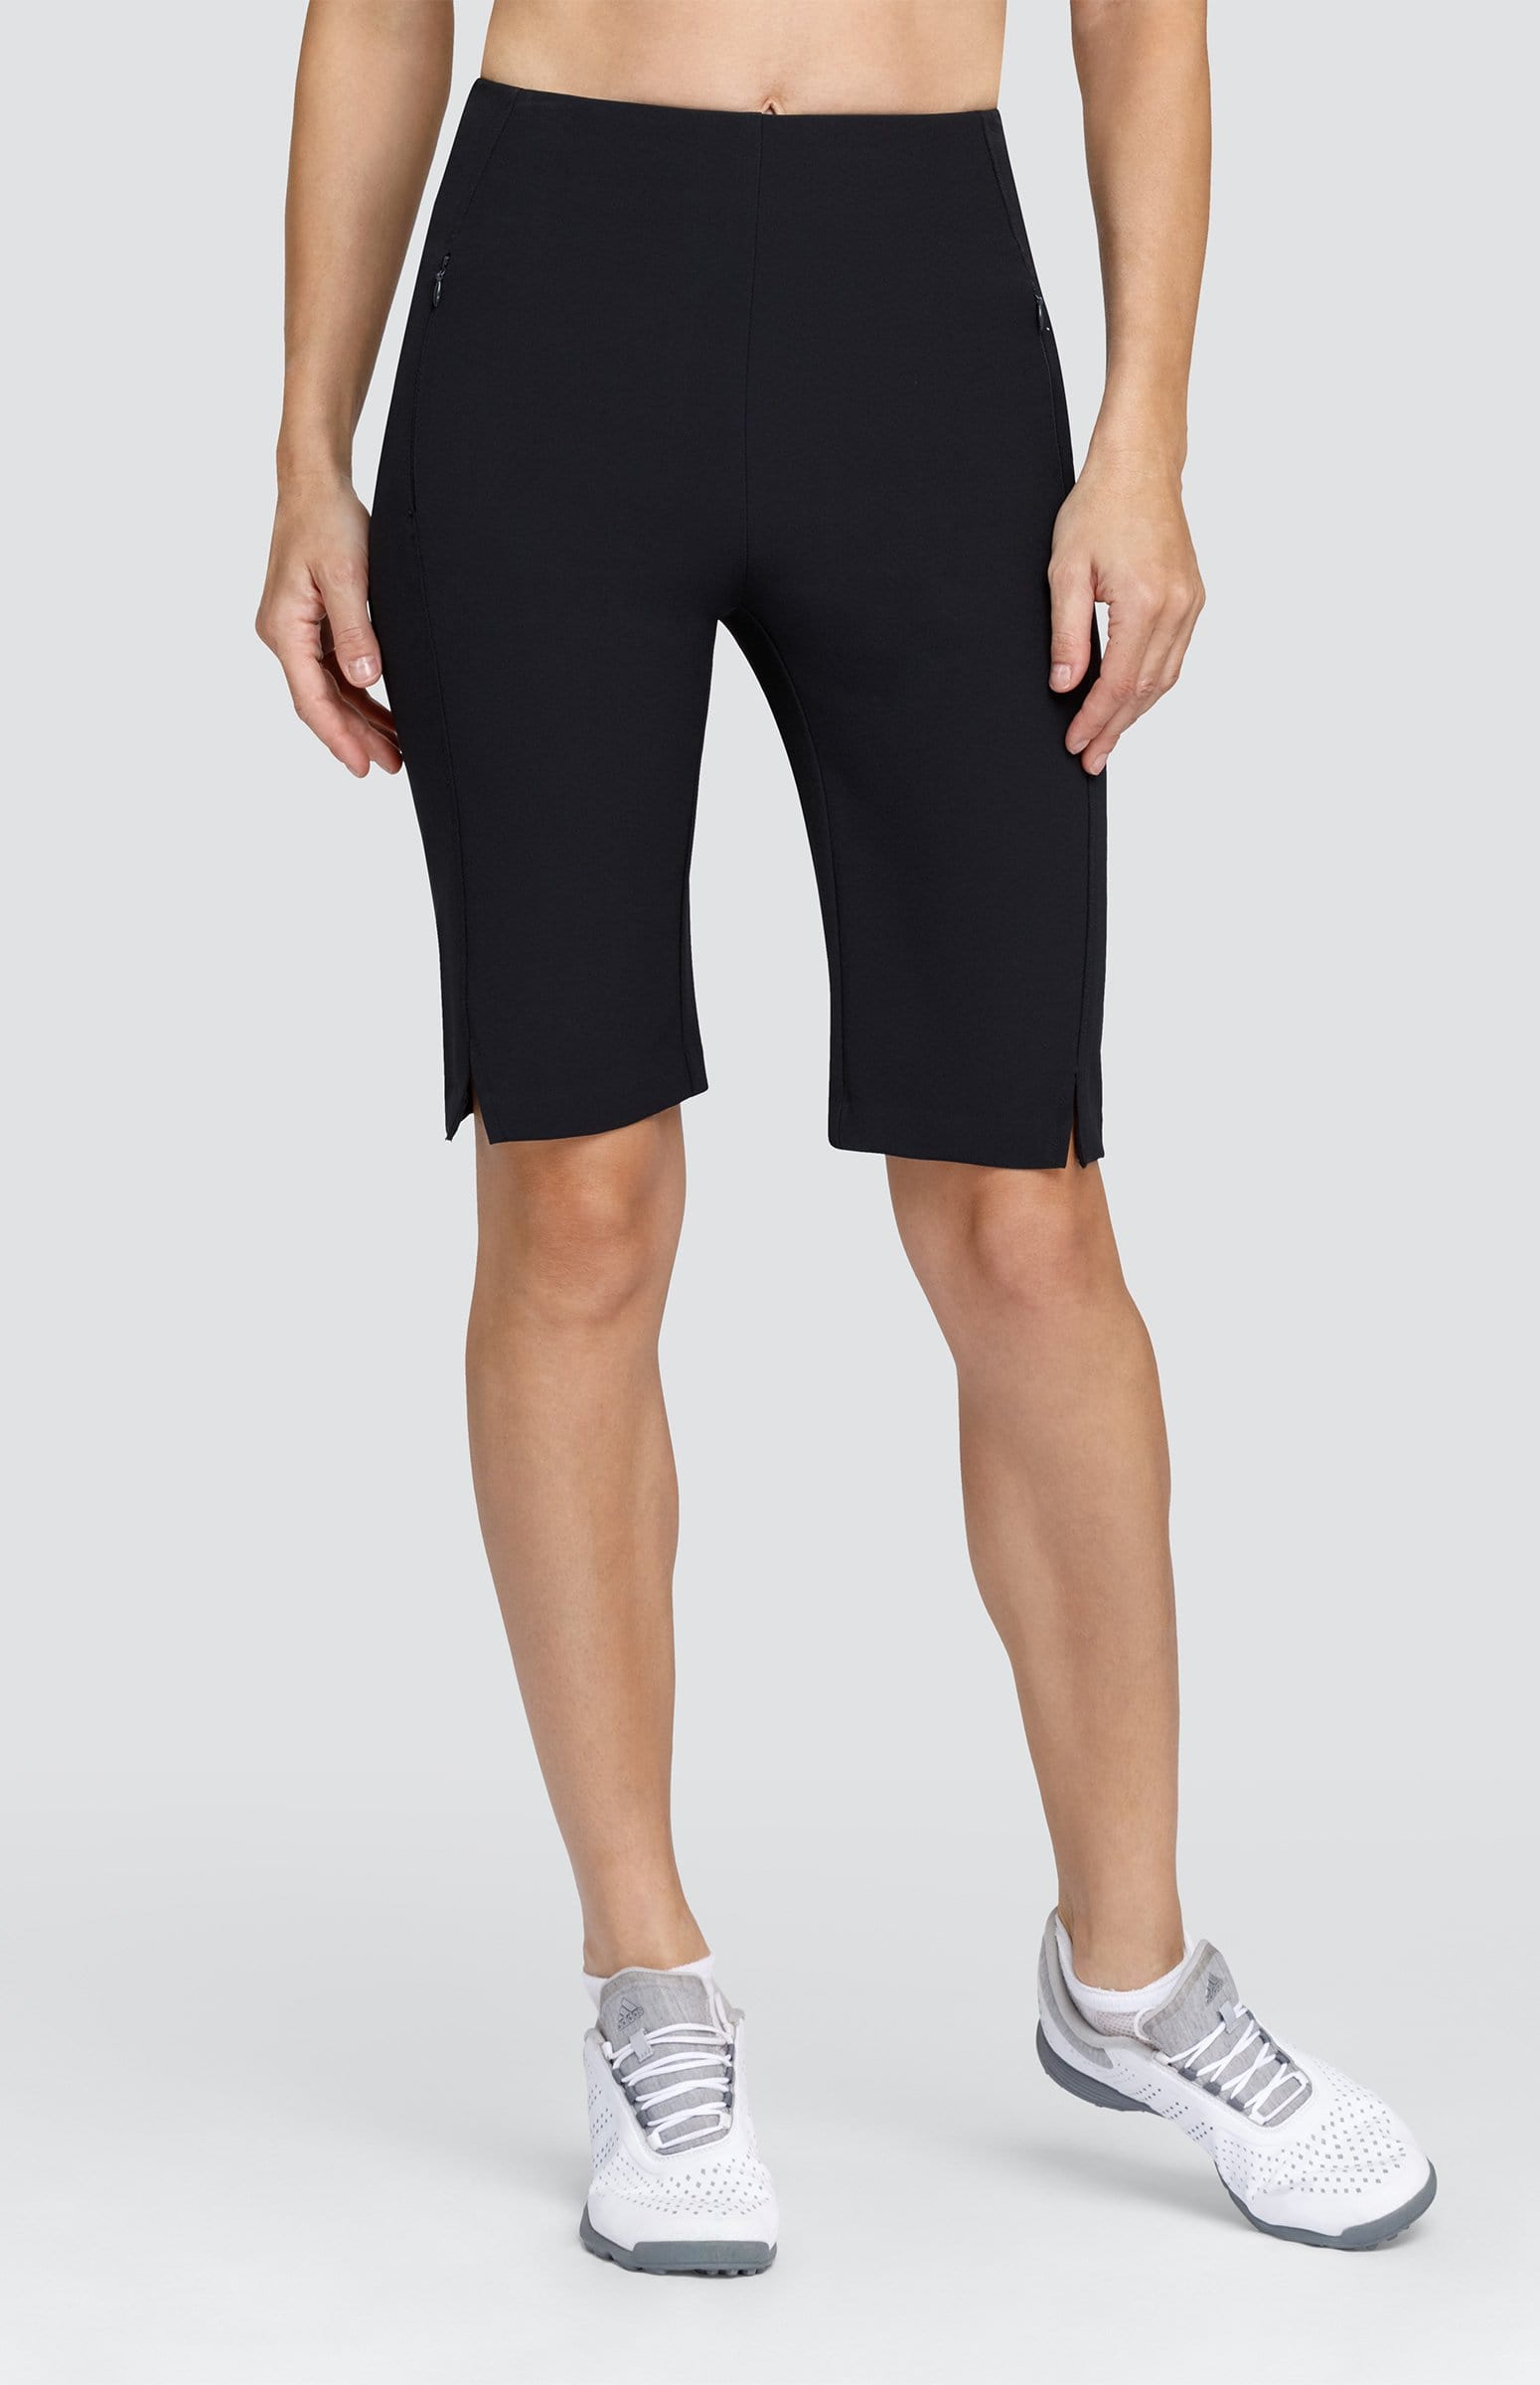 Sue Short - Onyx Black